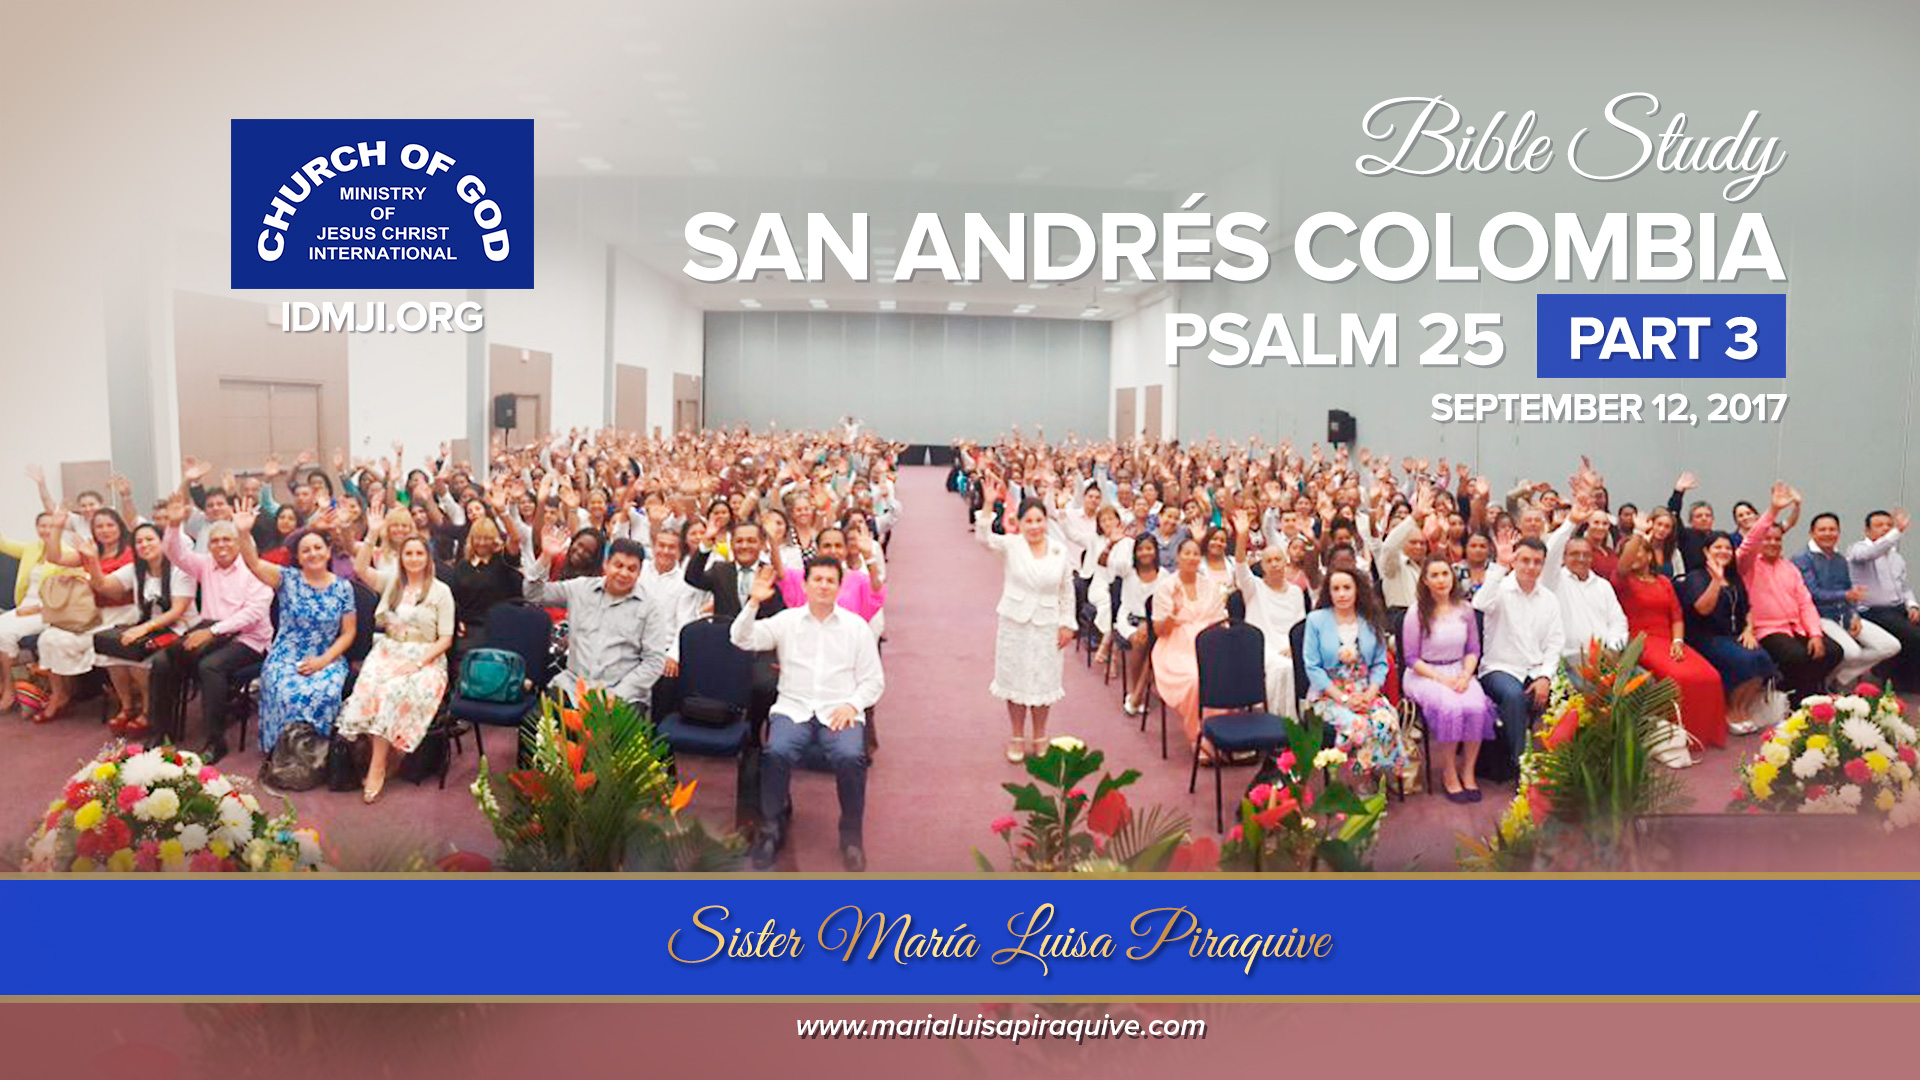 Bible Study San Andrés Colombia Part 3